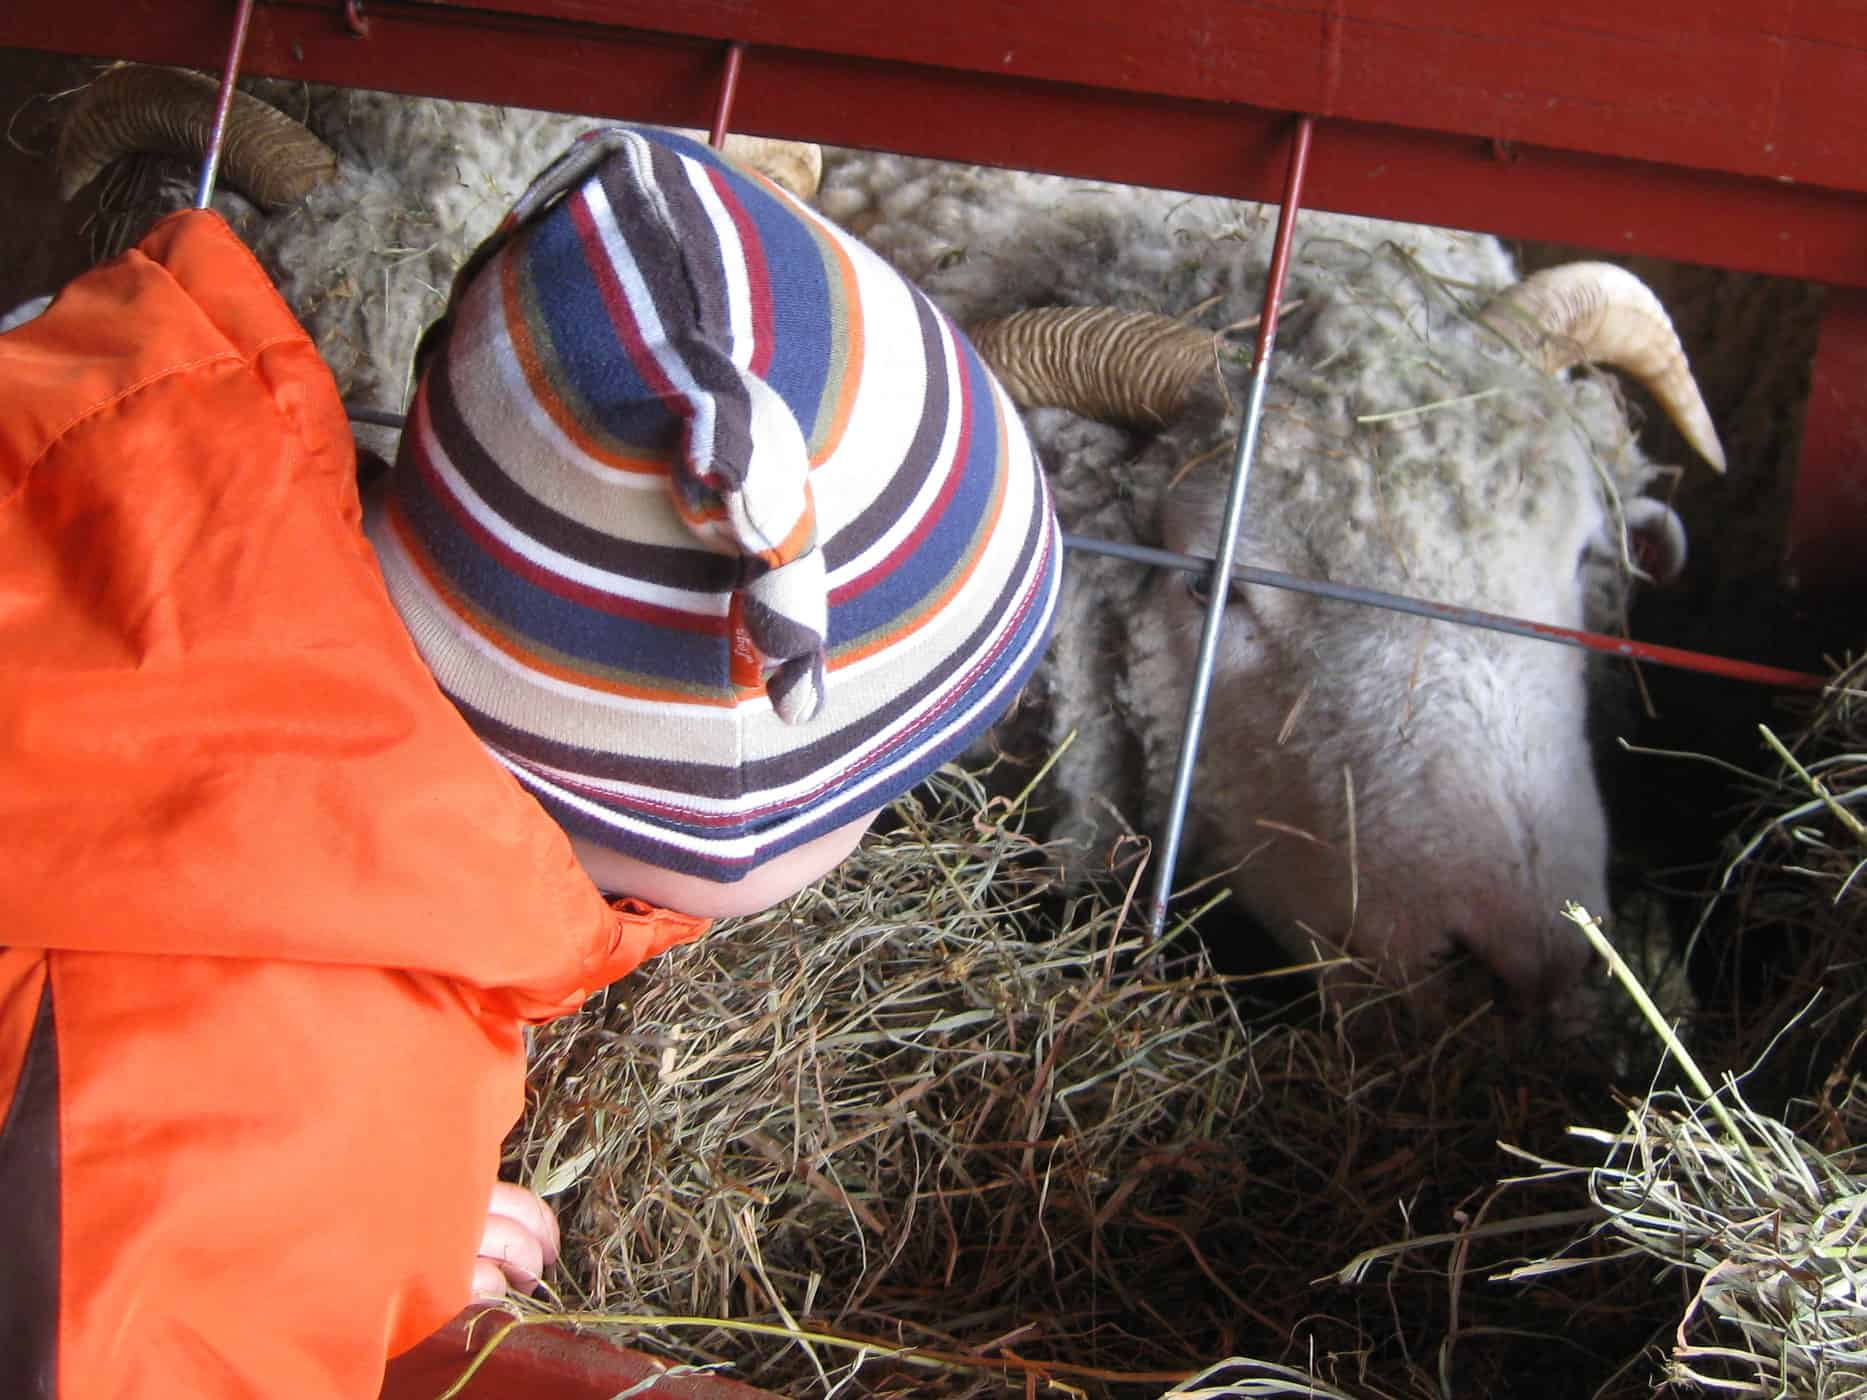 Sheep Shearing and Sweatpants Instead of Blogging